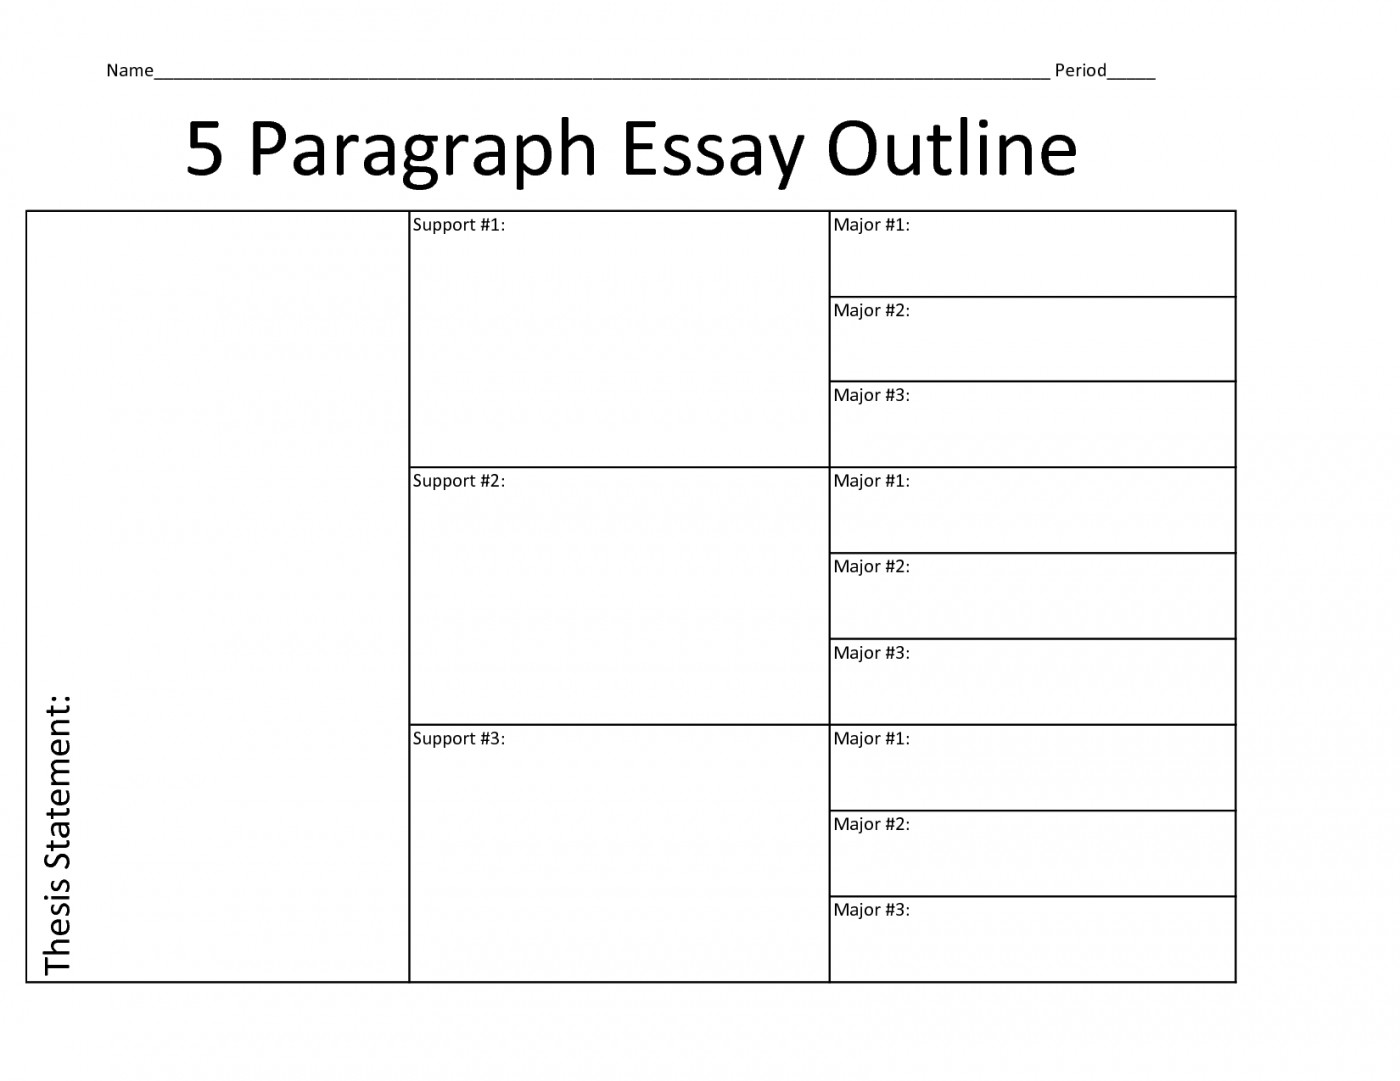 019 Graphic Organizers Executive Functioning Mr Brown039s Paragraph Essay Outline L Amazing 5 Template Pdf Free 1400